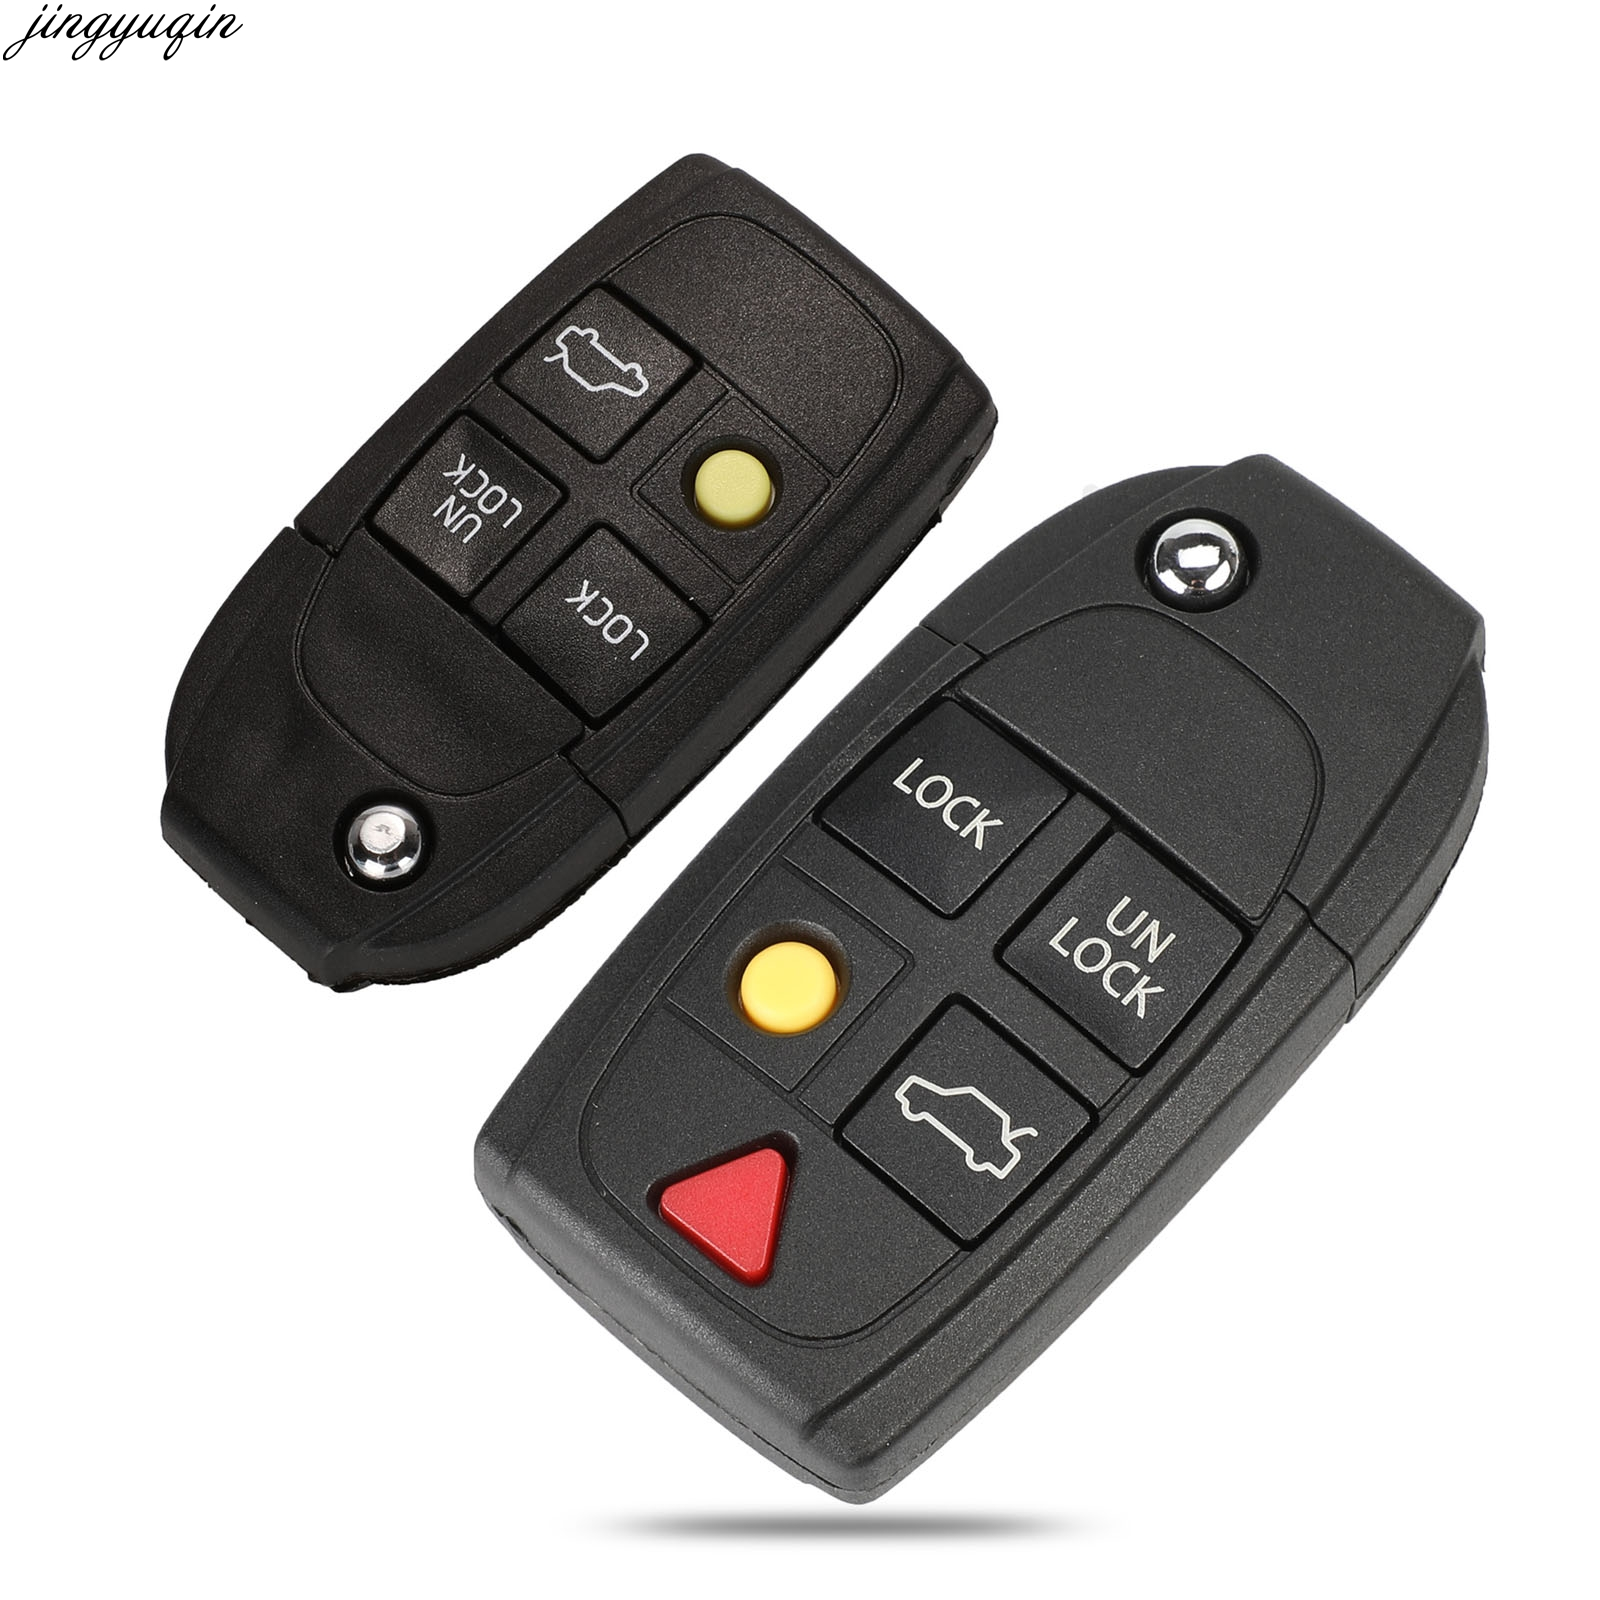 jingyuqin 4/5 Buttons Modified Flip Remote Car <font><b>Key</b></font> Shell For <font><b>Volvo</b></font> XC70 XC90 V50 V70 <font><b>S40</b></font> V40 V90 C70 S60 S80 S70 image